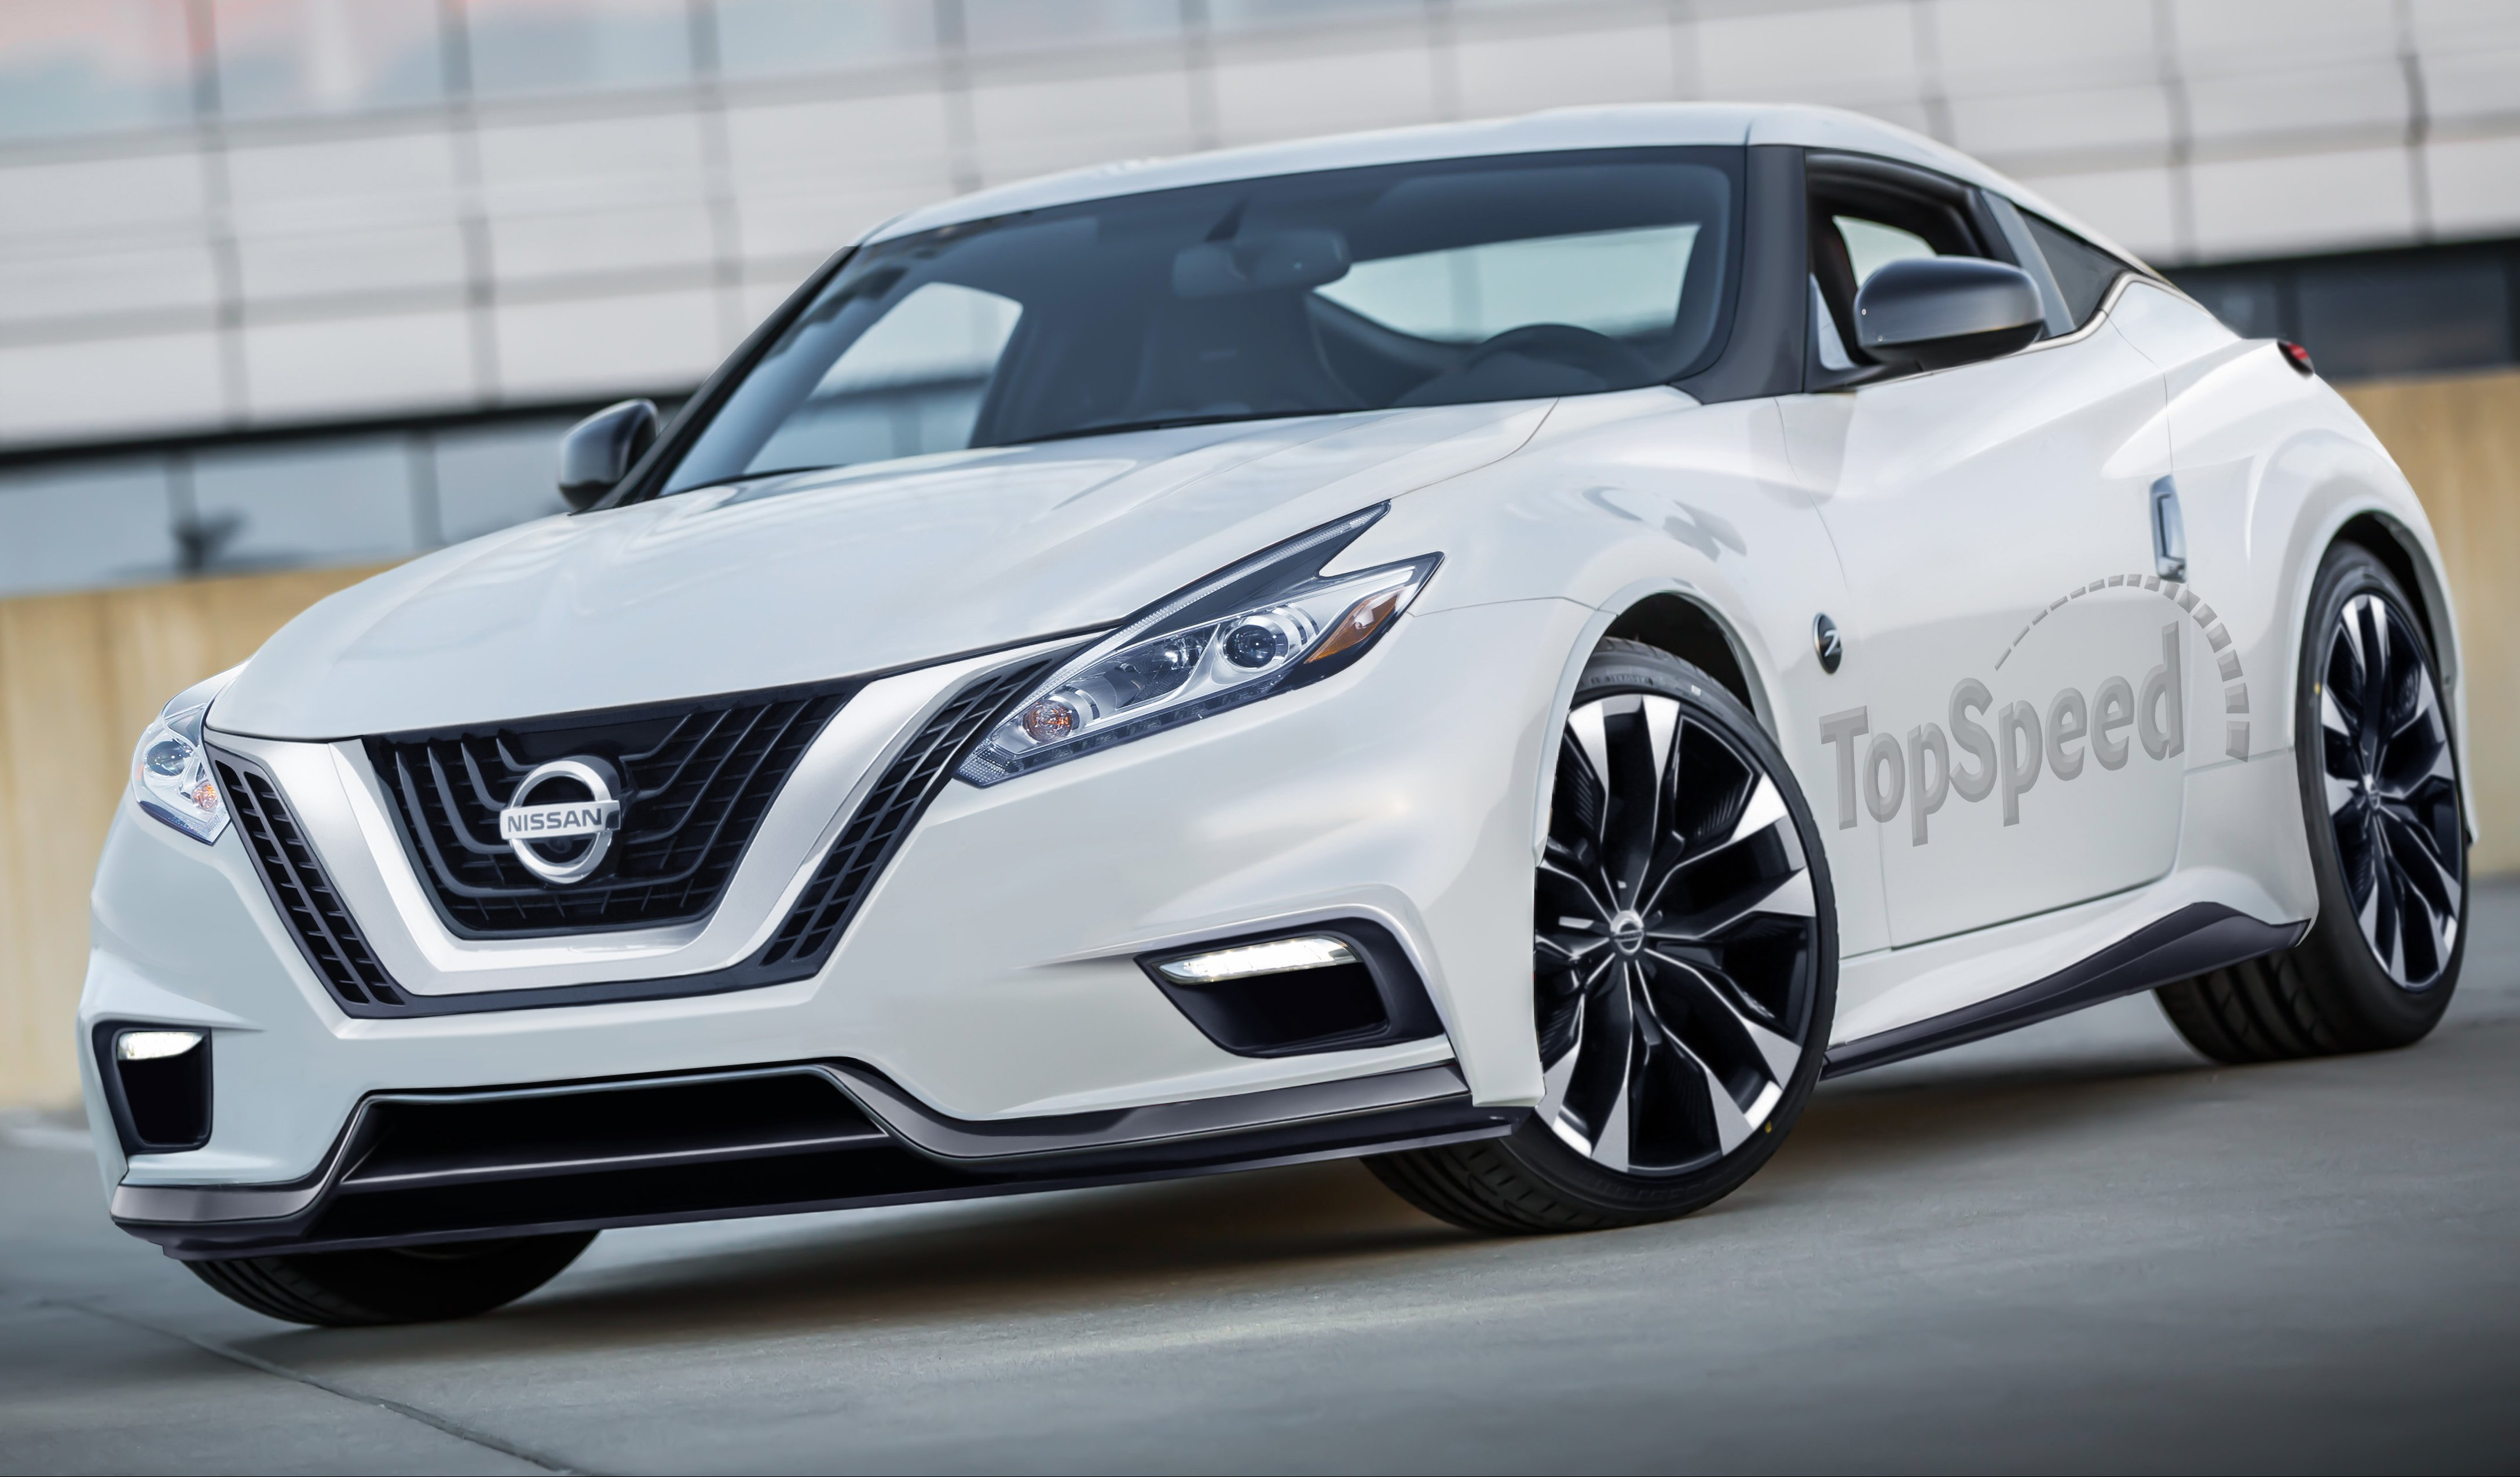 15 All New 2019 Nissan Z Car Concept